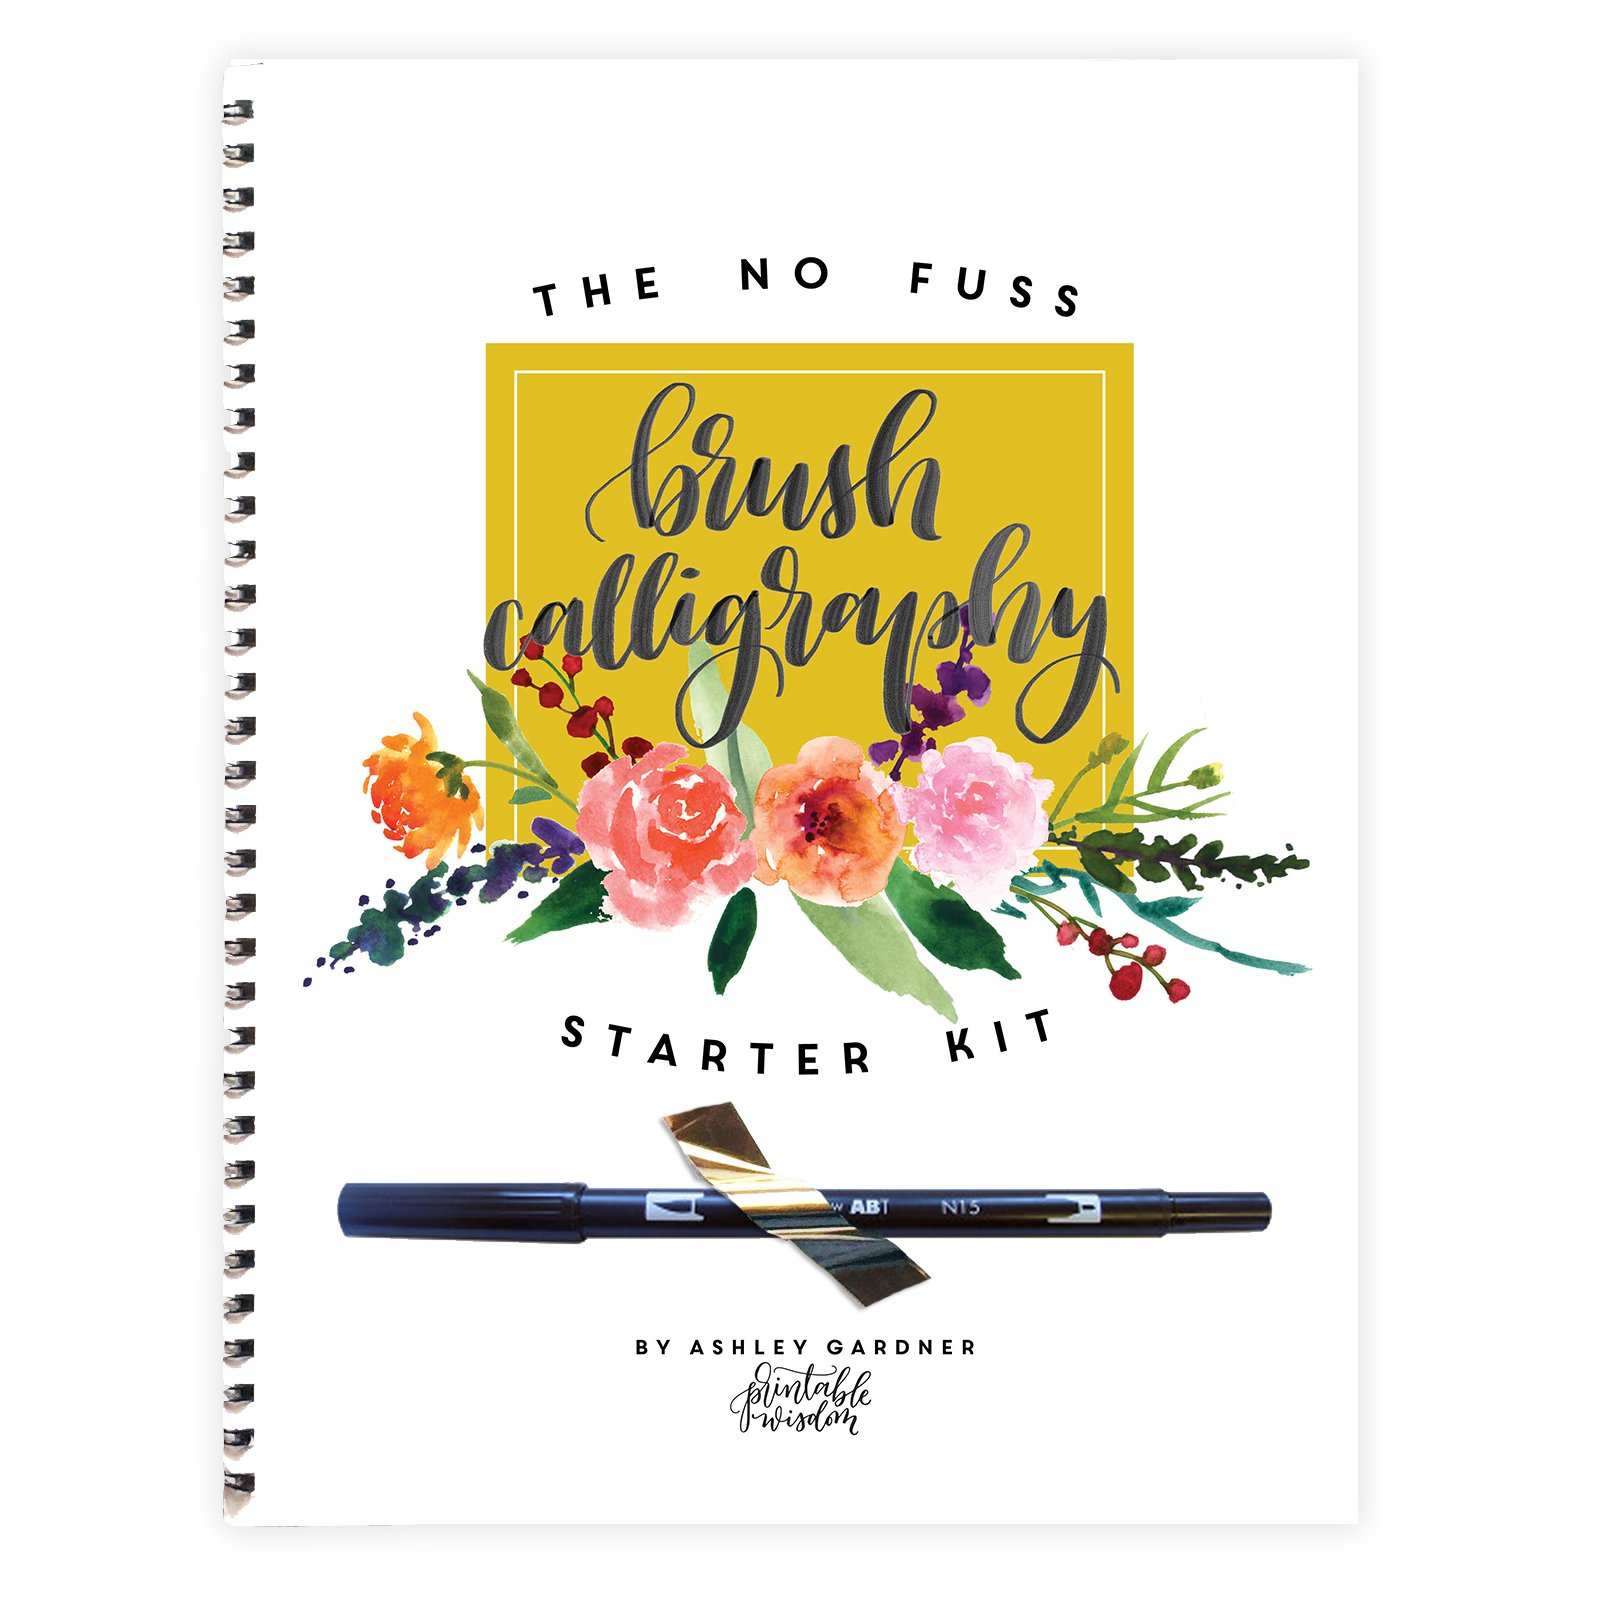 No Fuss Brush Calligraphy Starter Kit, Learn calligraphy for beginners and step by step instructions, calligraphy pen included, learn modern hand lettering, modern calligraphy techniques